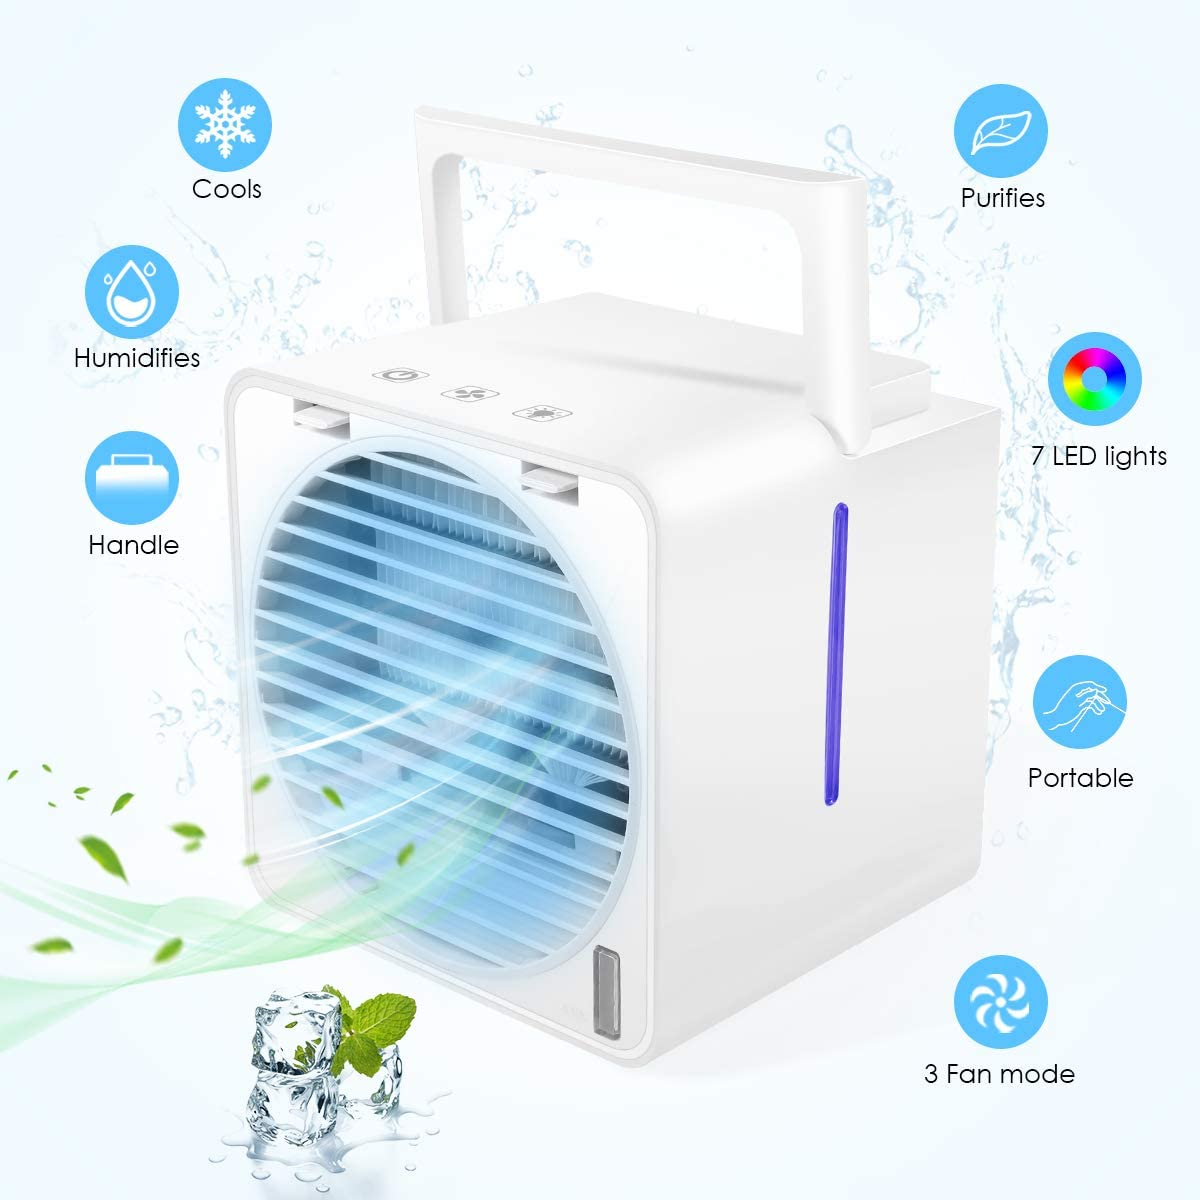 Portable Air Conditioner, Personal Air Cooler - 4 in 1 Mini USB Personal Evaporative Cooler, Purifier, Sterilizer, Humidifier, 3 Speed Desktop Cooling Fan with 7 Colors LED Light for Home Room Office